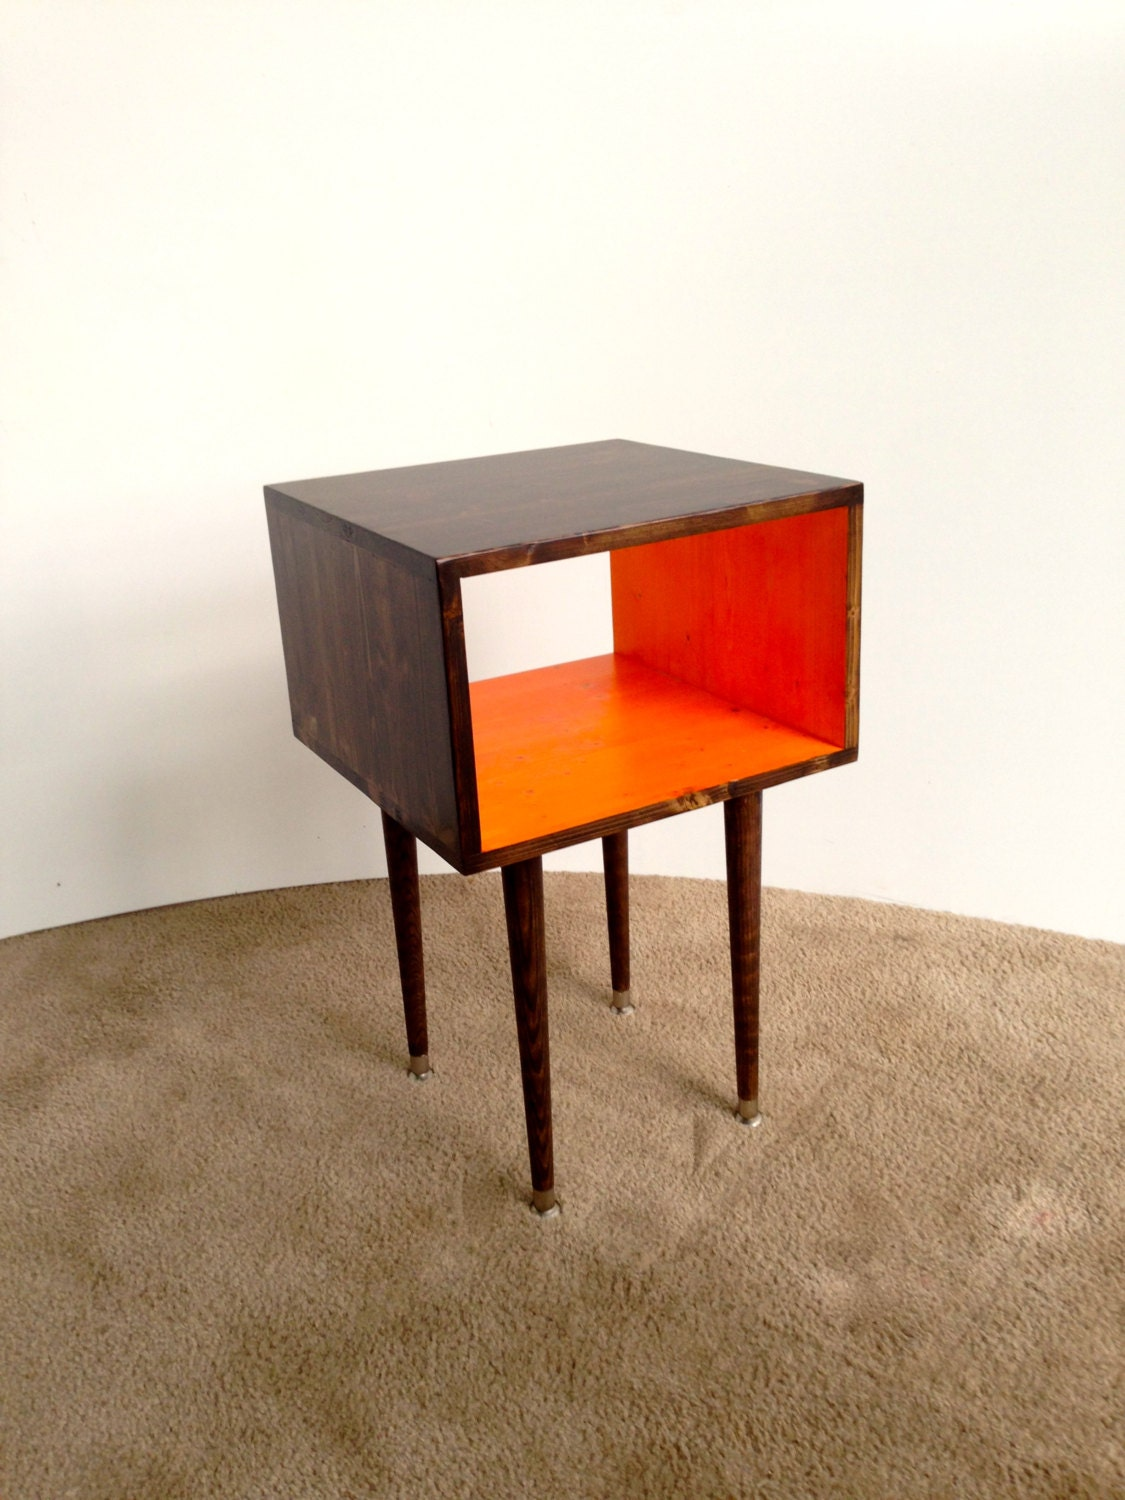 Free shipping the joilet side table mid century modern Modern side table